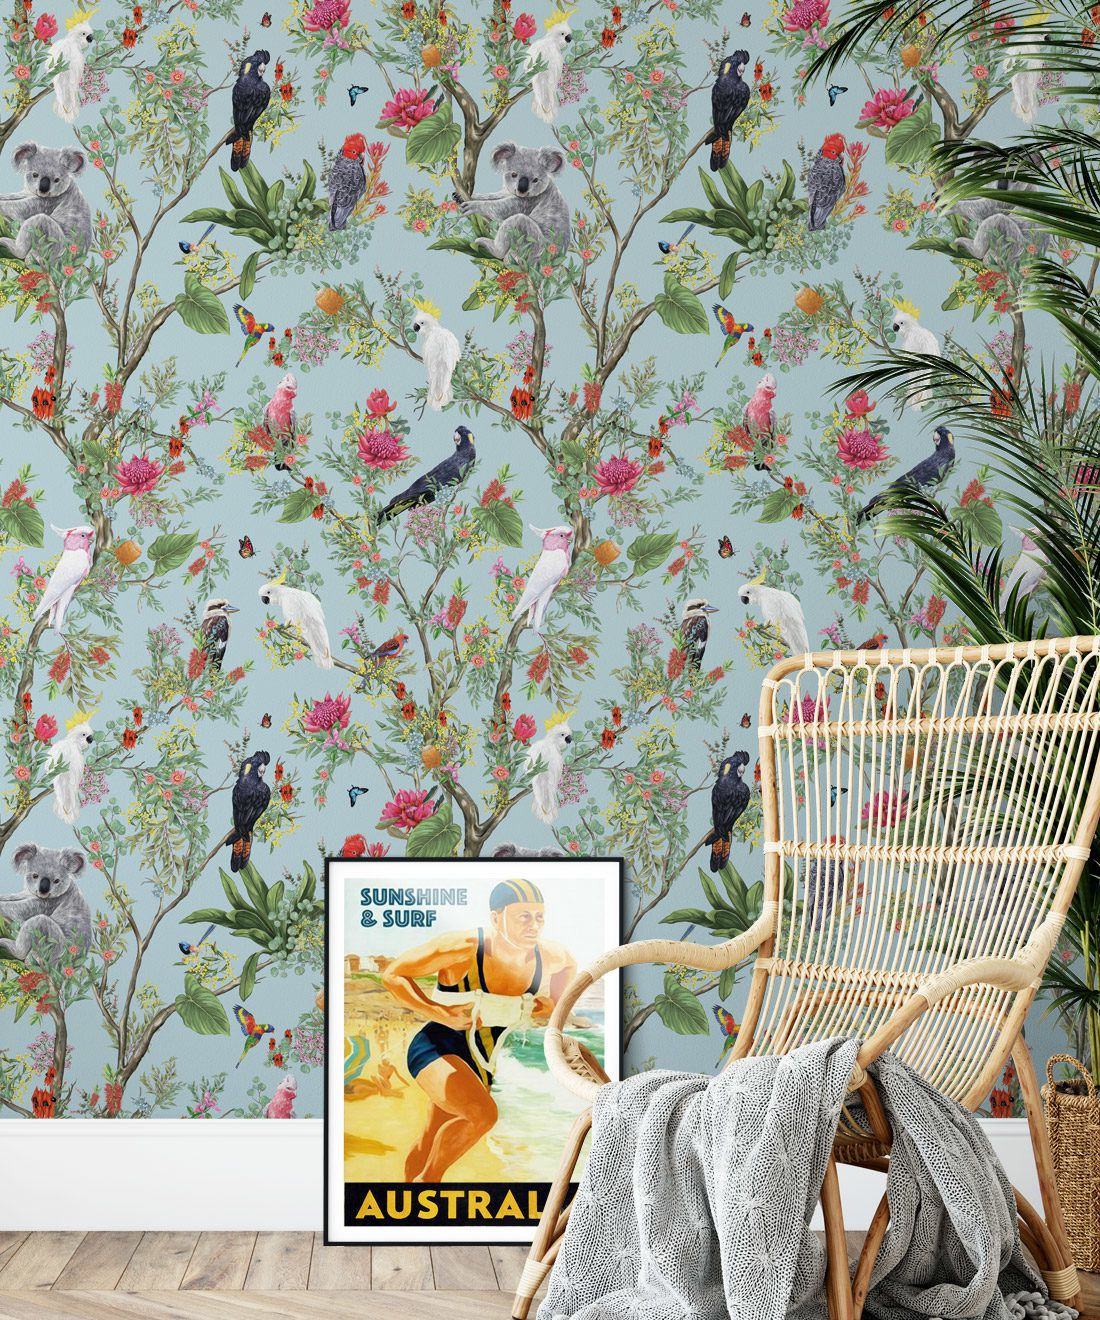 Australia Wallpaper • Cockatoos, Koalas, Parrots, Finches • Milton & King USA • Aqua Wallpaper Insitu